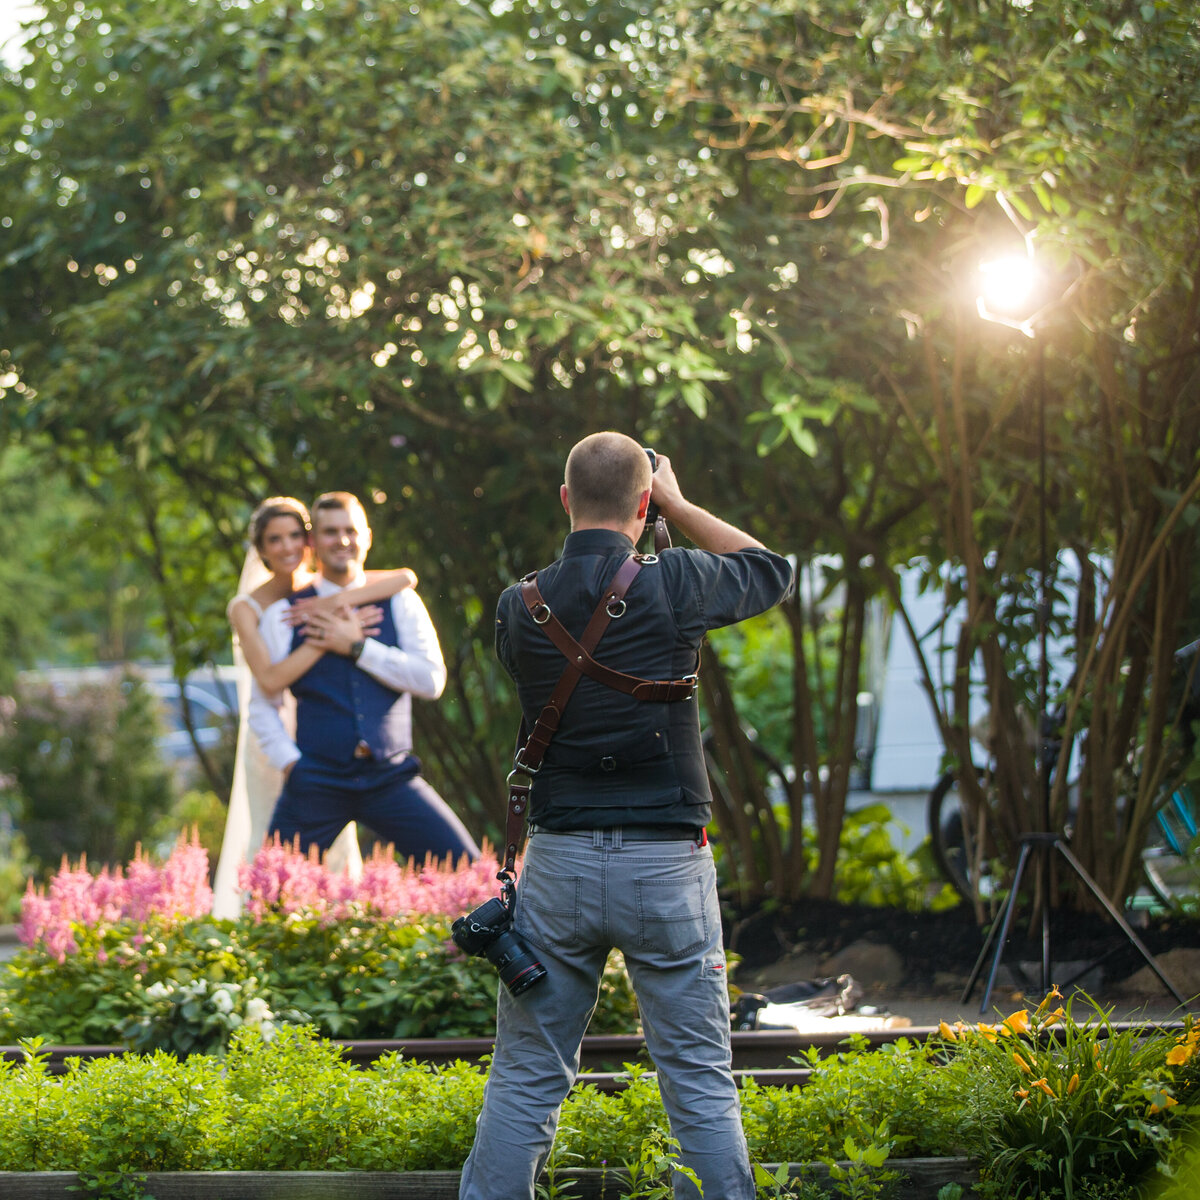 Travis photographs bride and groom behind the scenes on wedding day